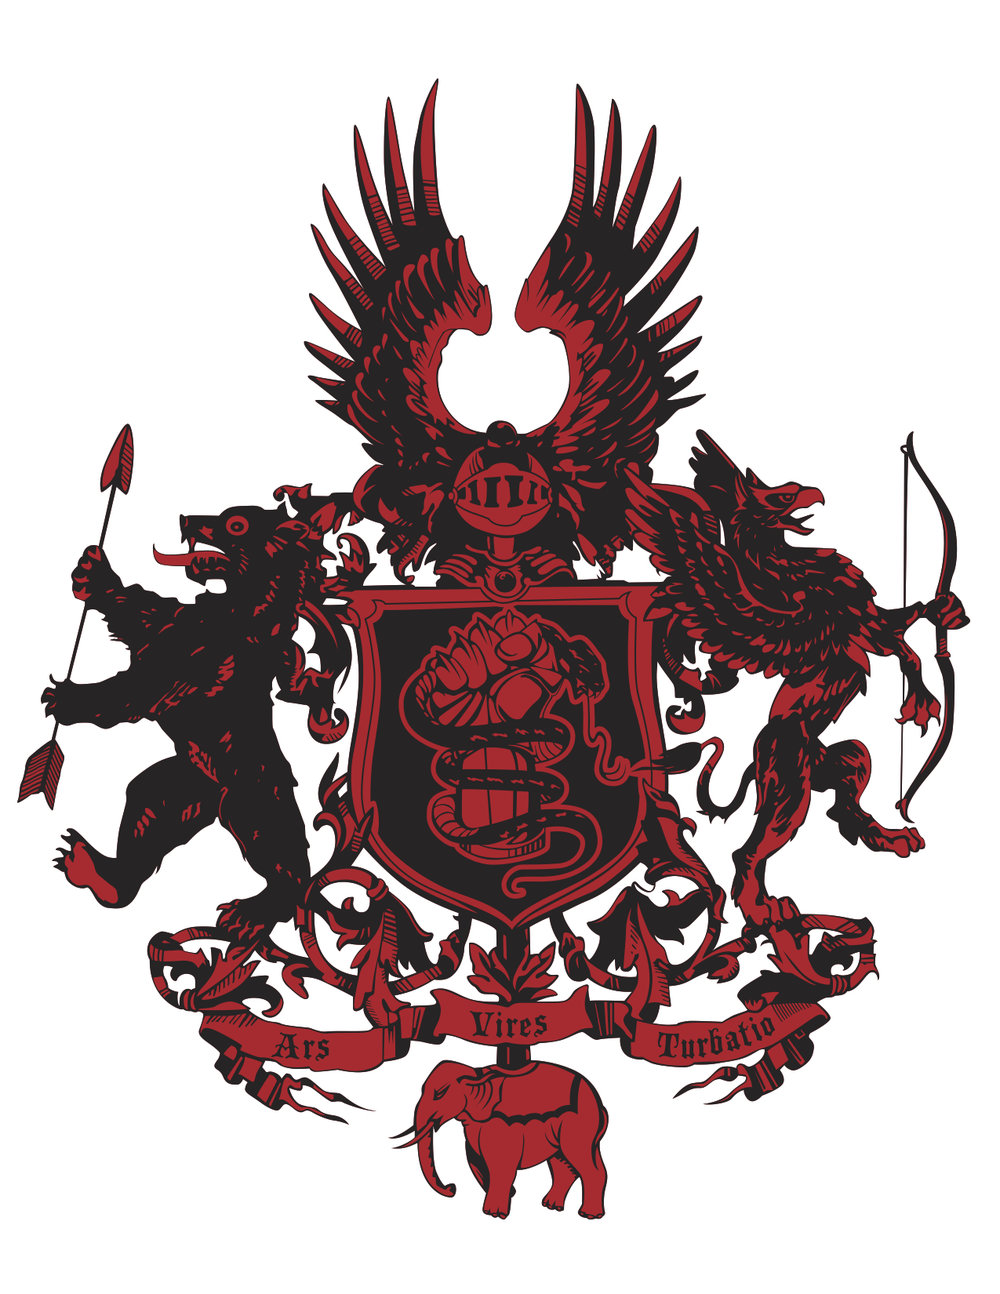 vanguard-crest-final-blackred+copy.jpg